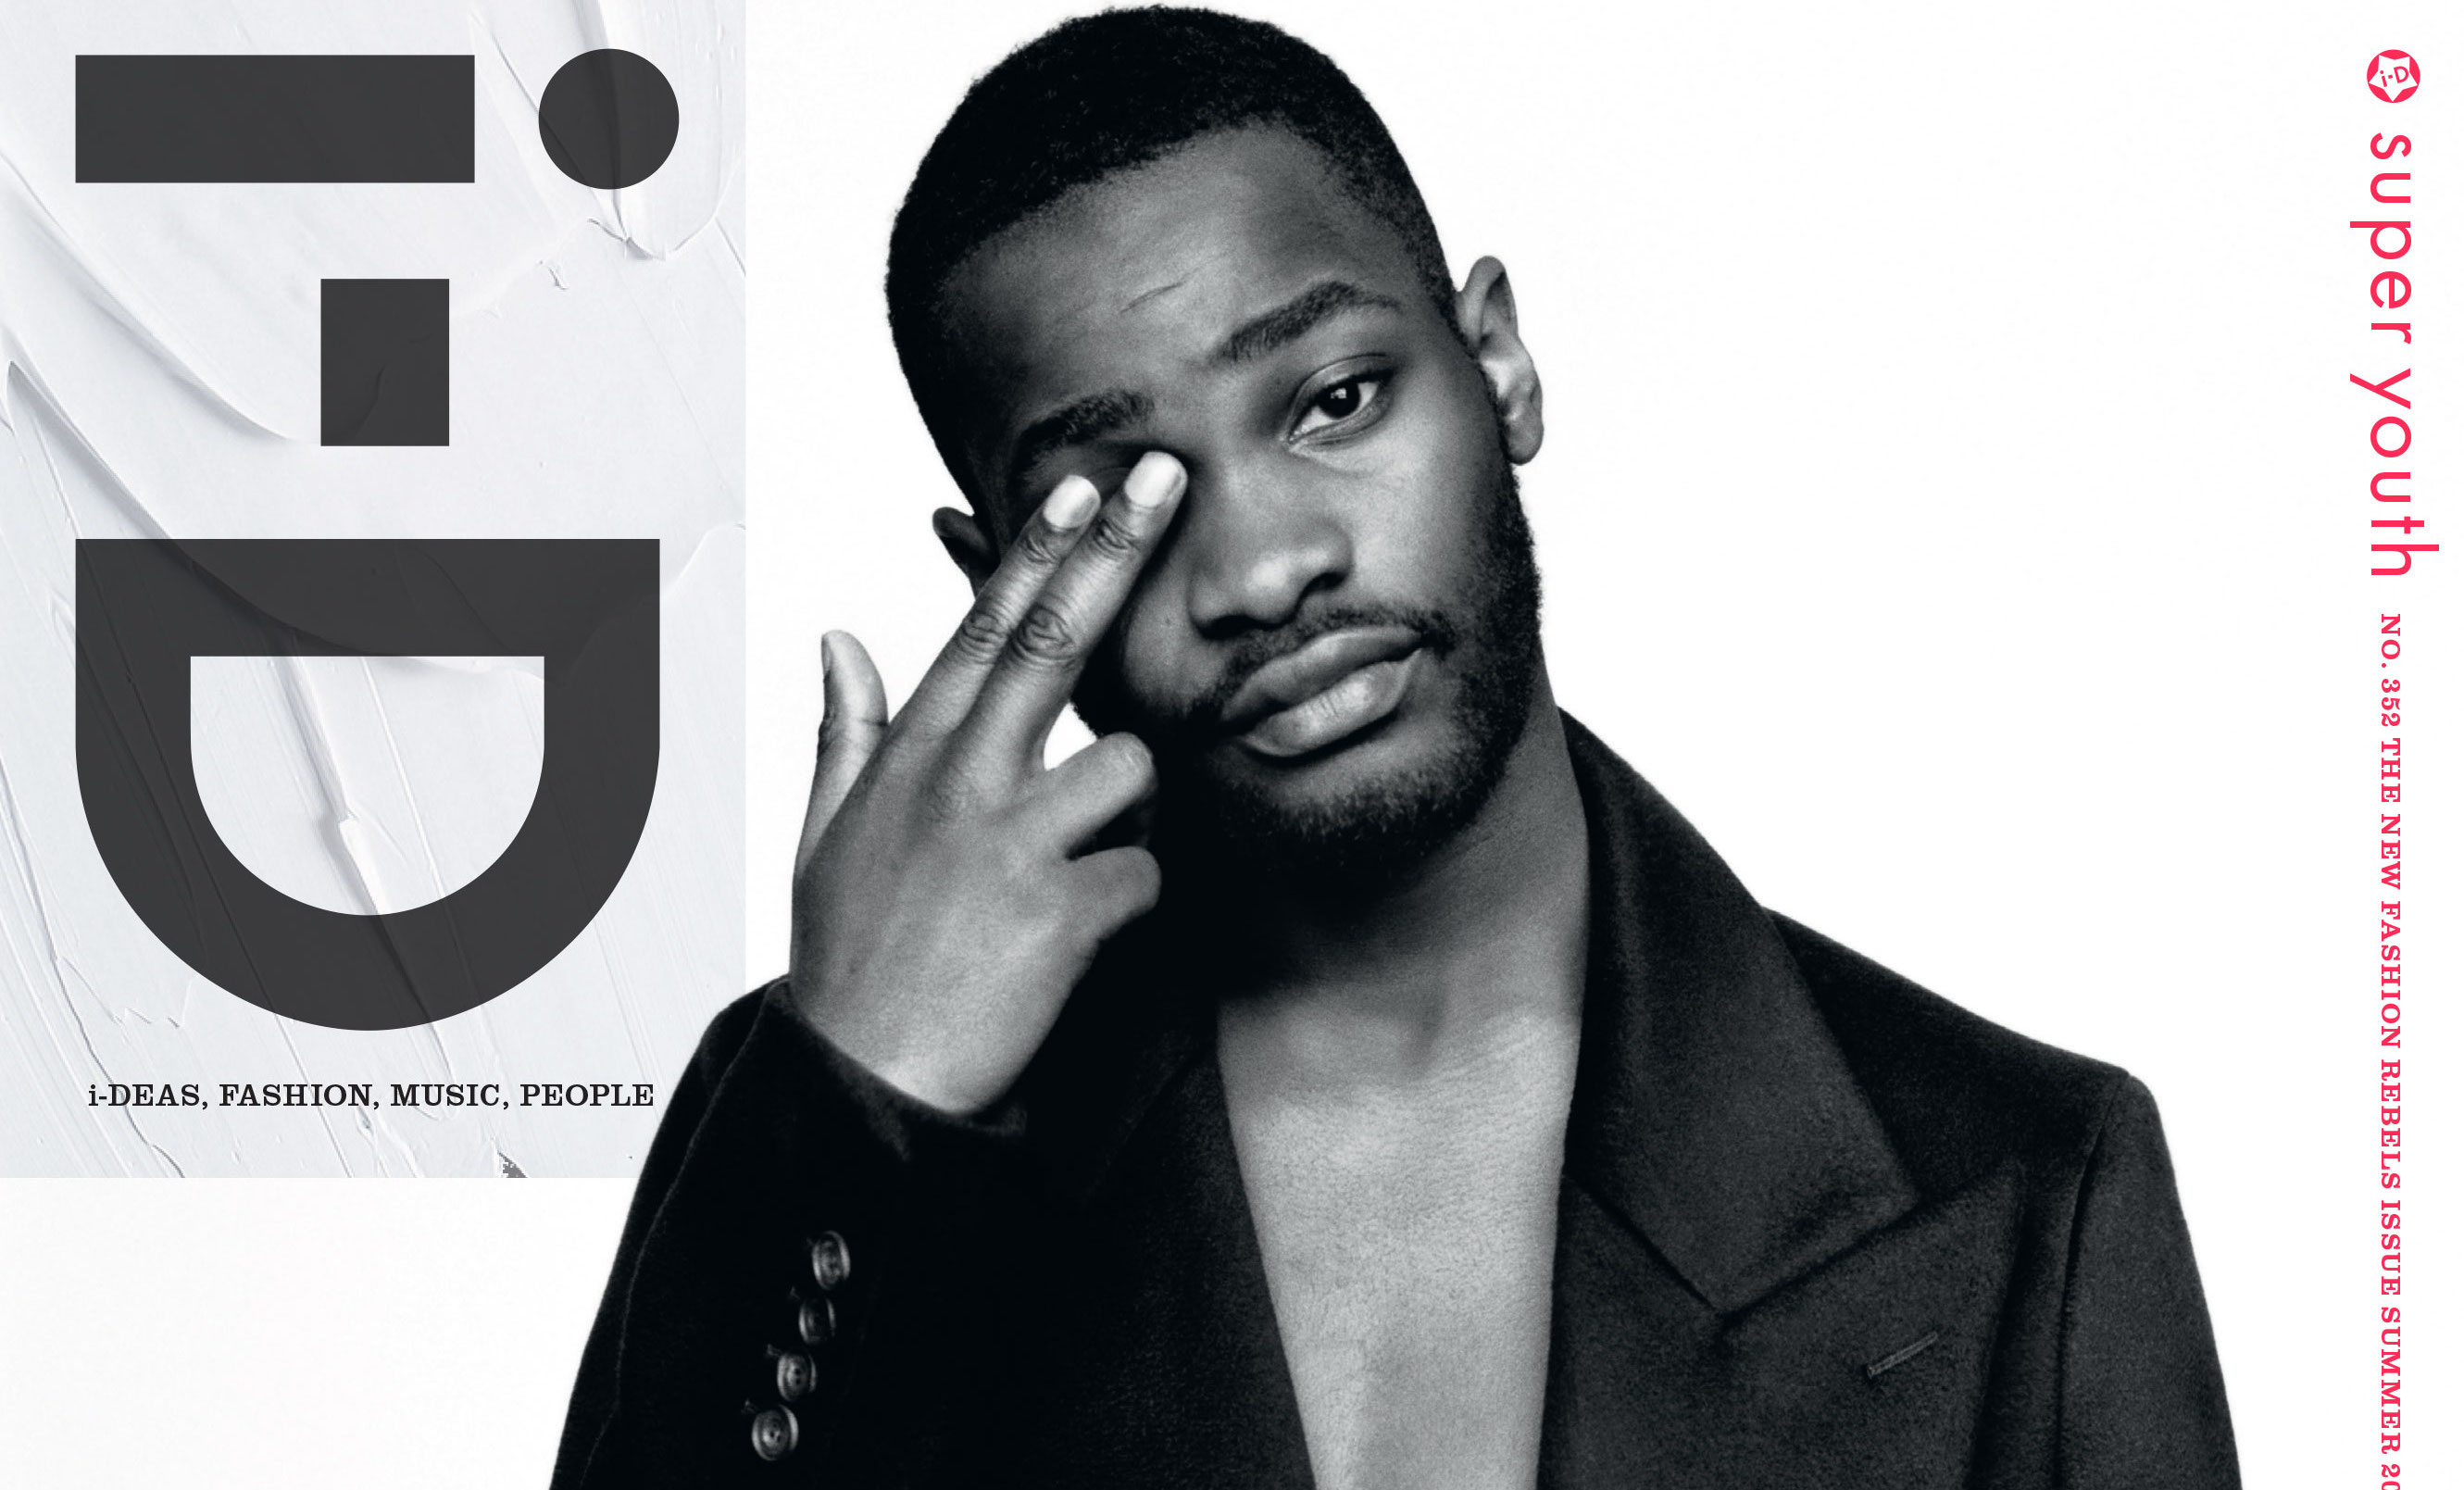 Dave Covers i-D's 'New Fashion Rebels' Issue